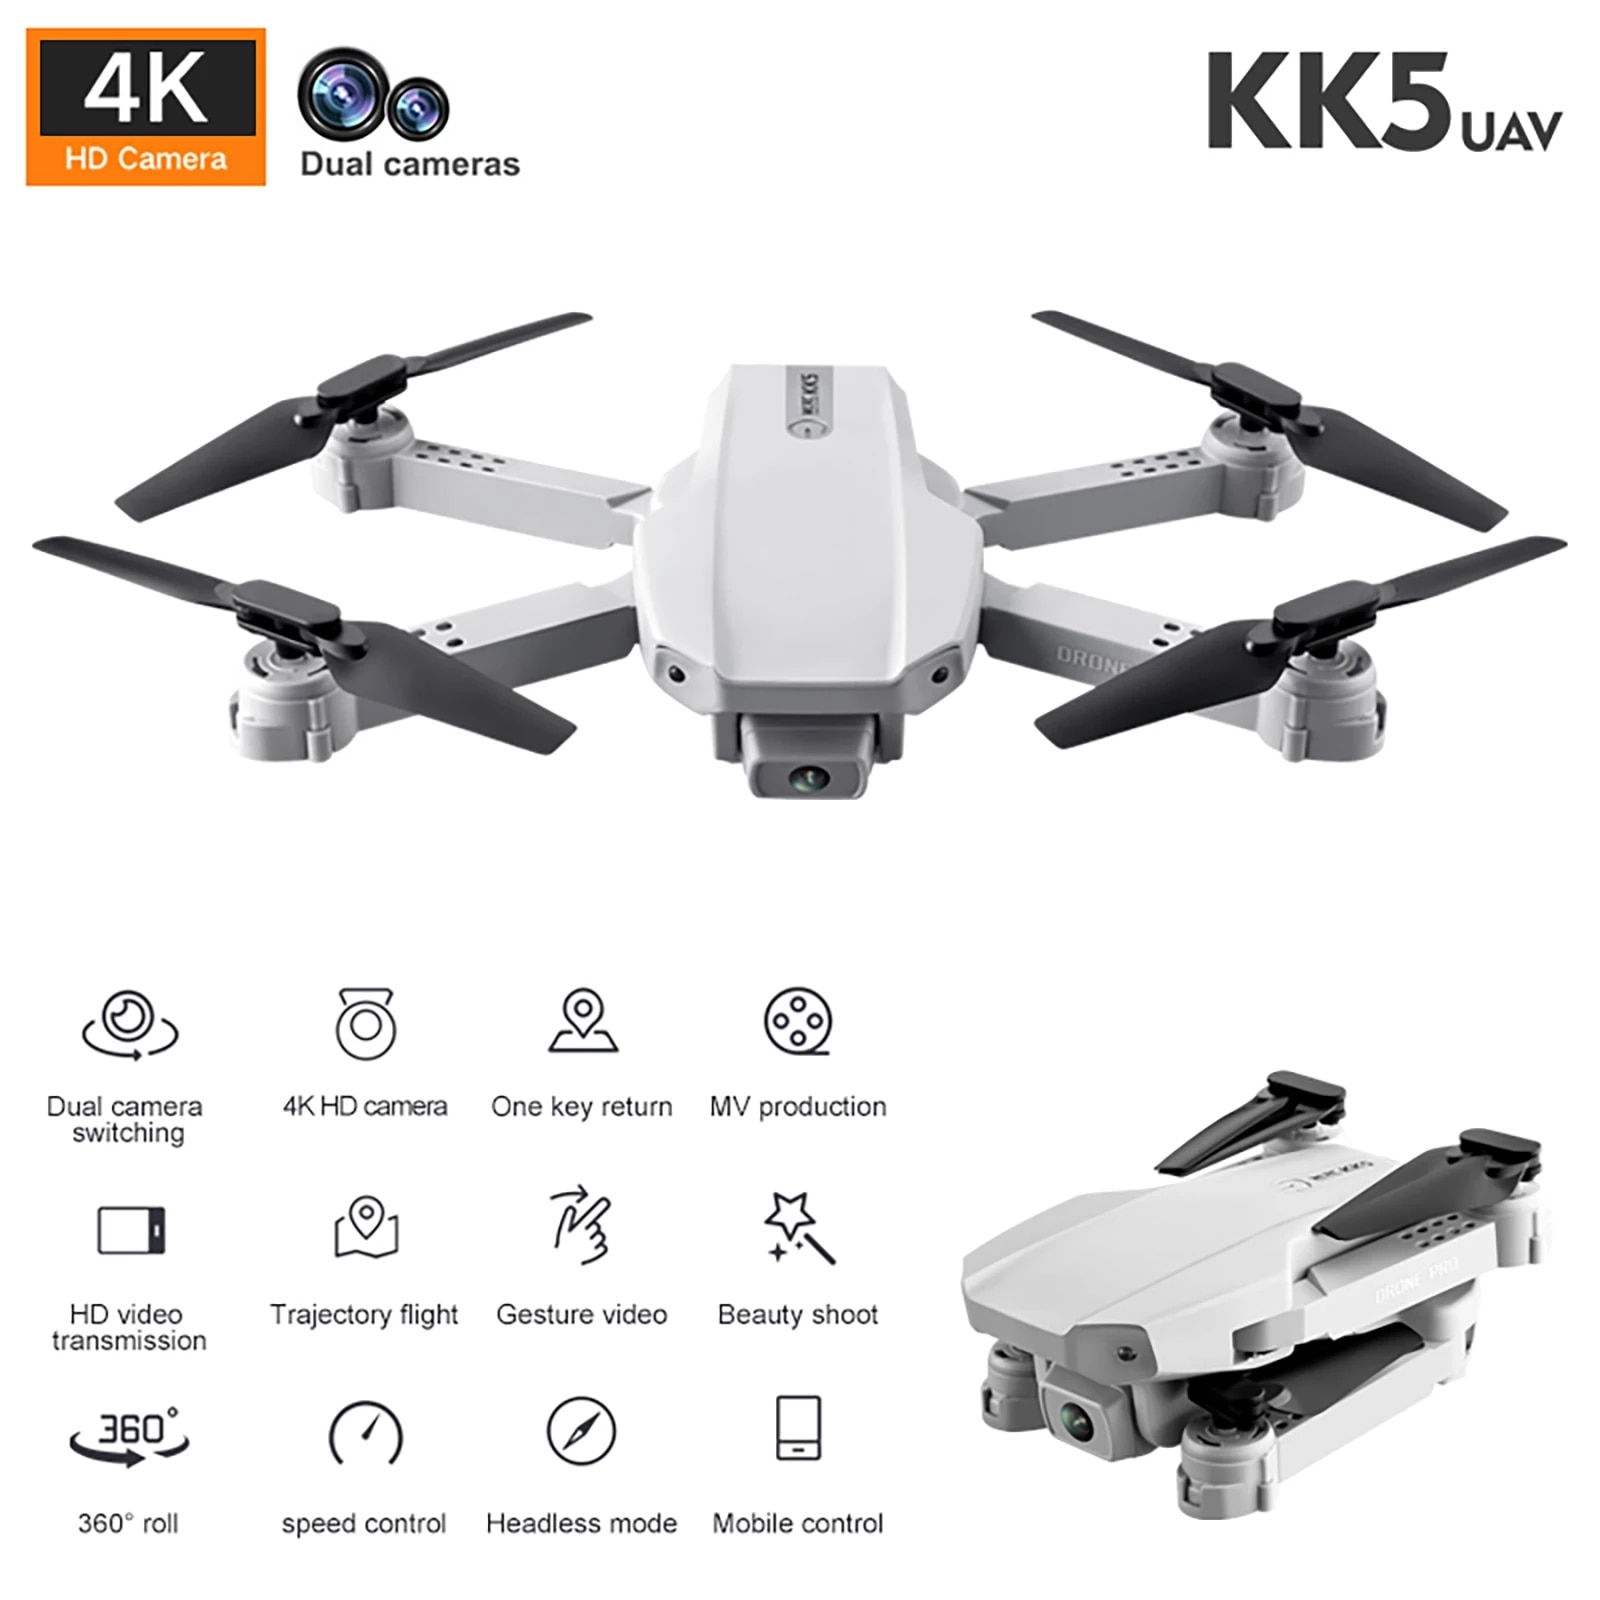 f6 drone 4k 1080p hd wifi quadcopter servo camera remote control adjustable angle drone camera dron reserve height rc helicopter KK5 Rc Mini Drone 4k HD Drone Wide Angle Camera 1080P WiFi fpv Drone Foldable Quadcopter Headless Mode Follow Me Helicopter Toys